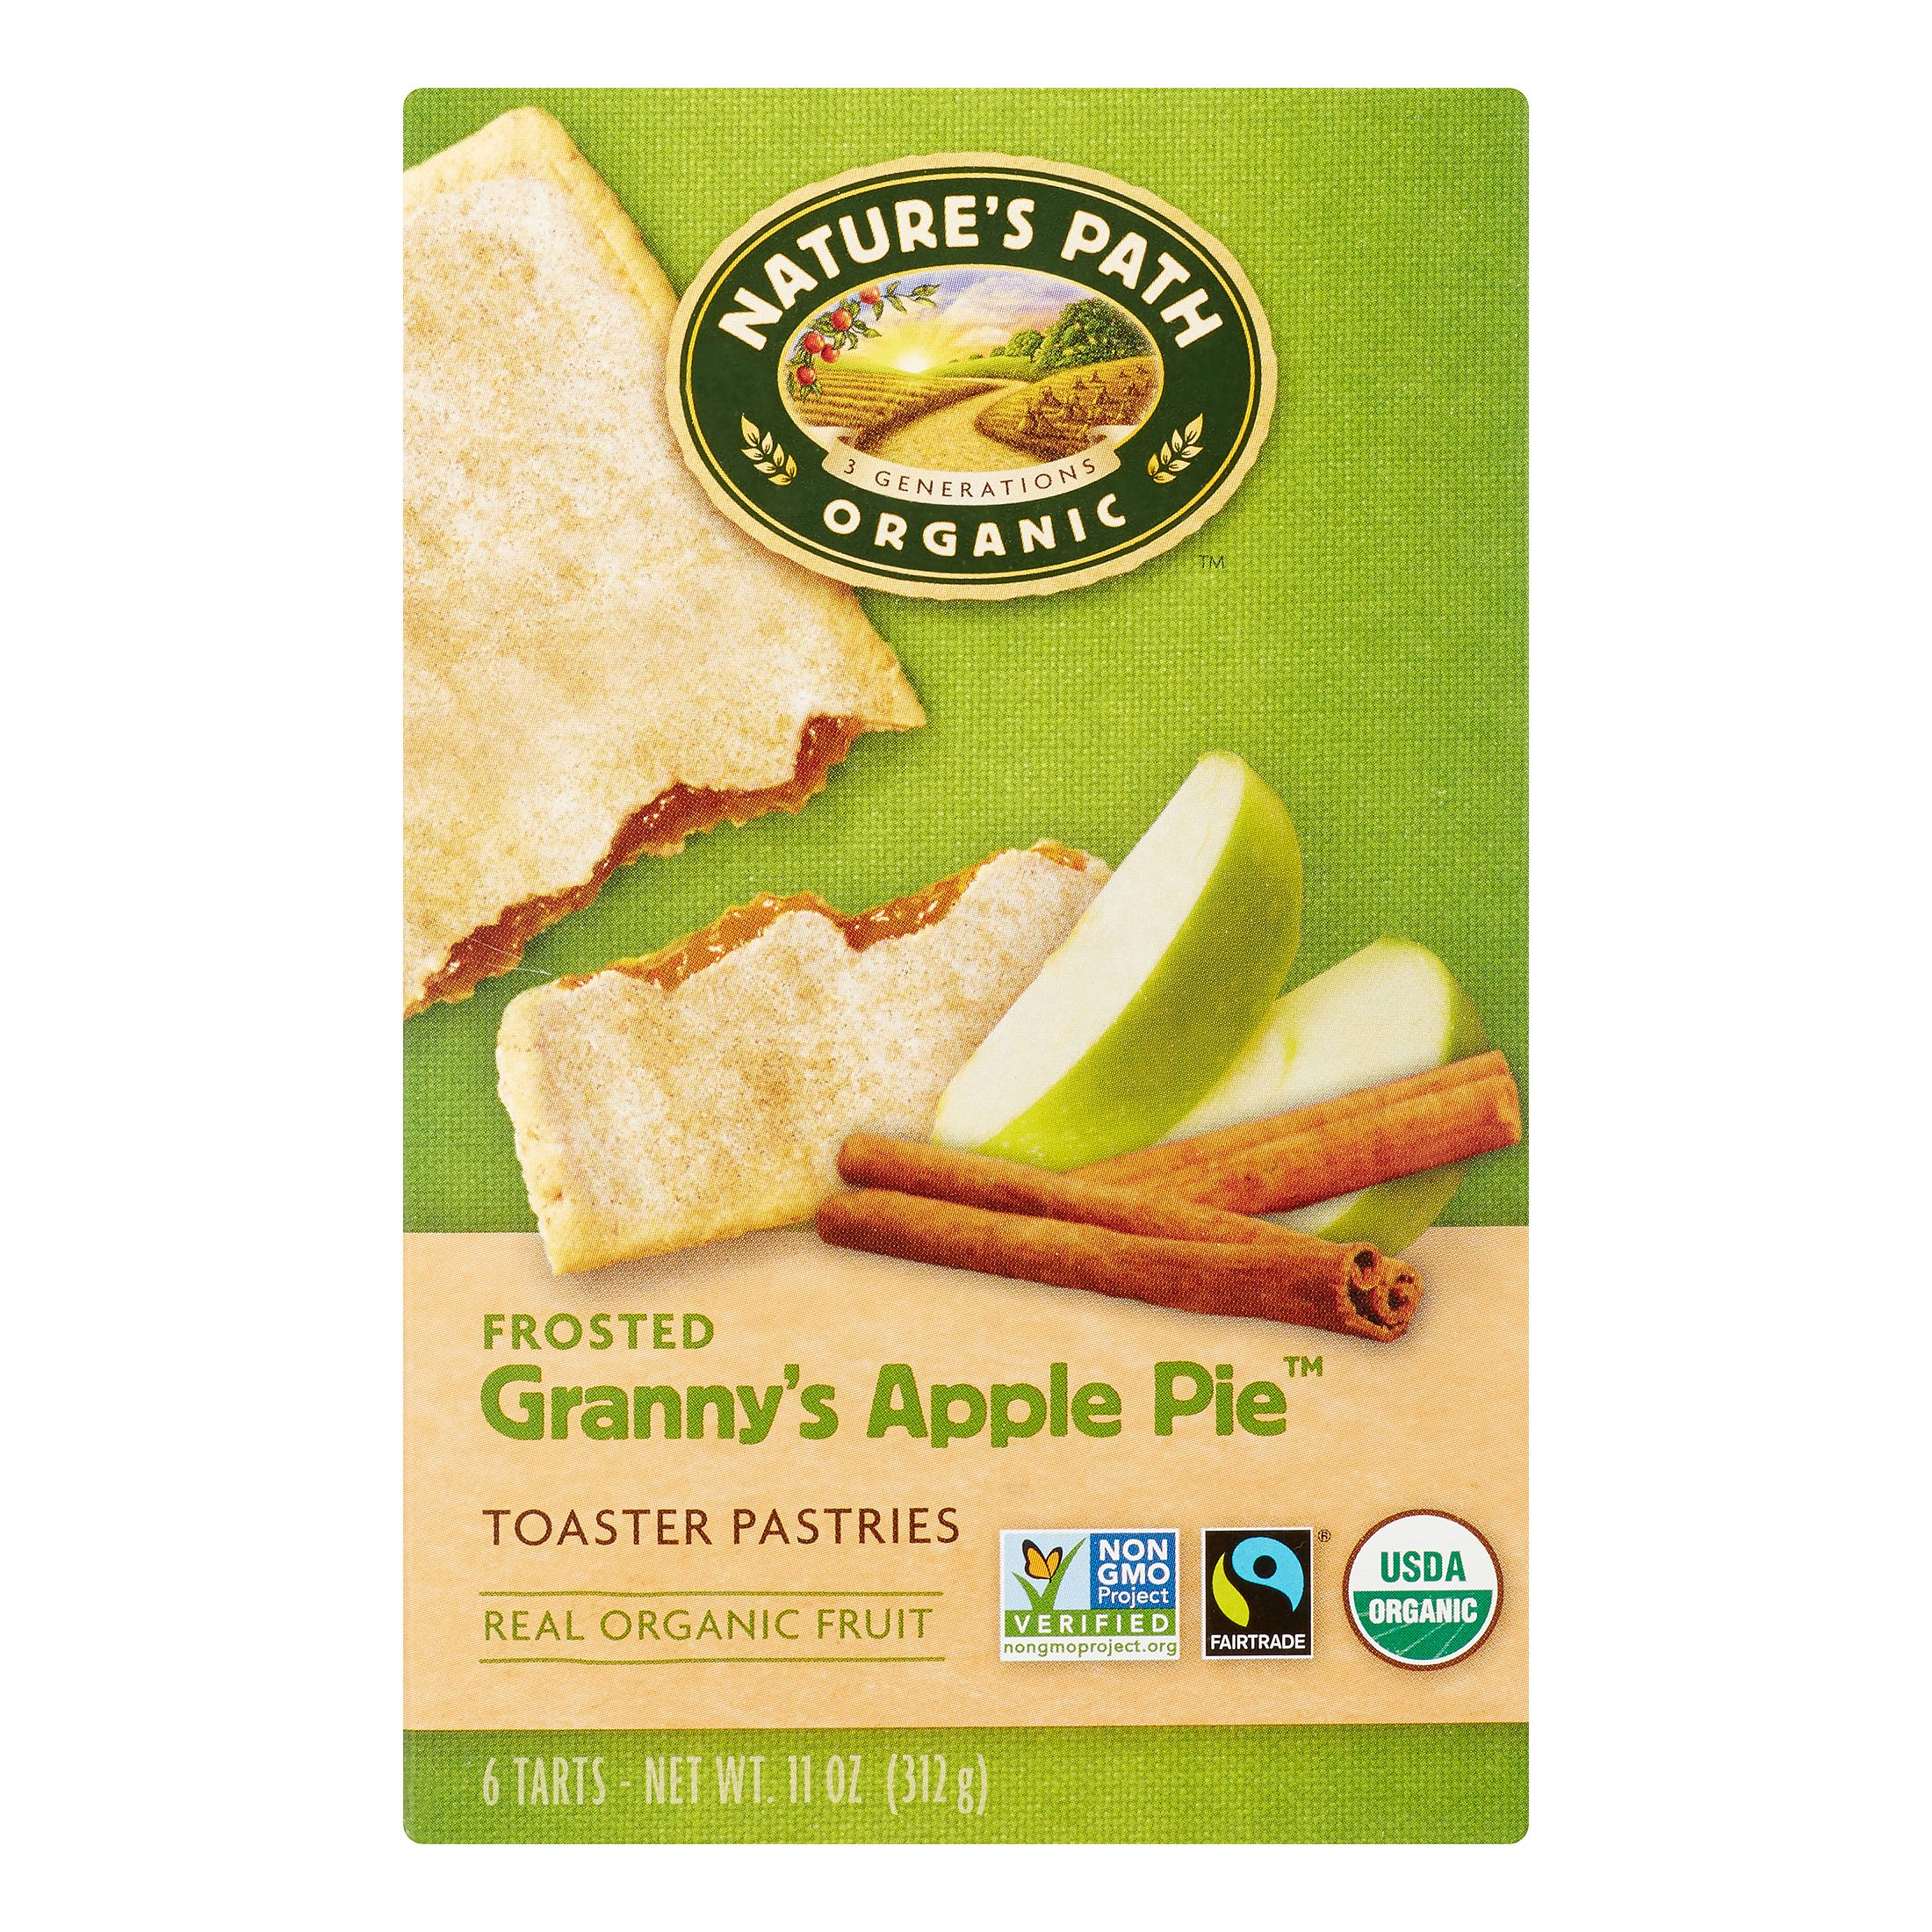 Natures Path Toaster Pastries, Frosted Granny Apple Pie, 1.83 Oz, 6 Count